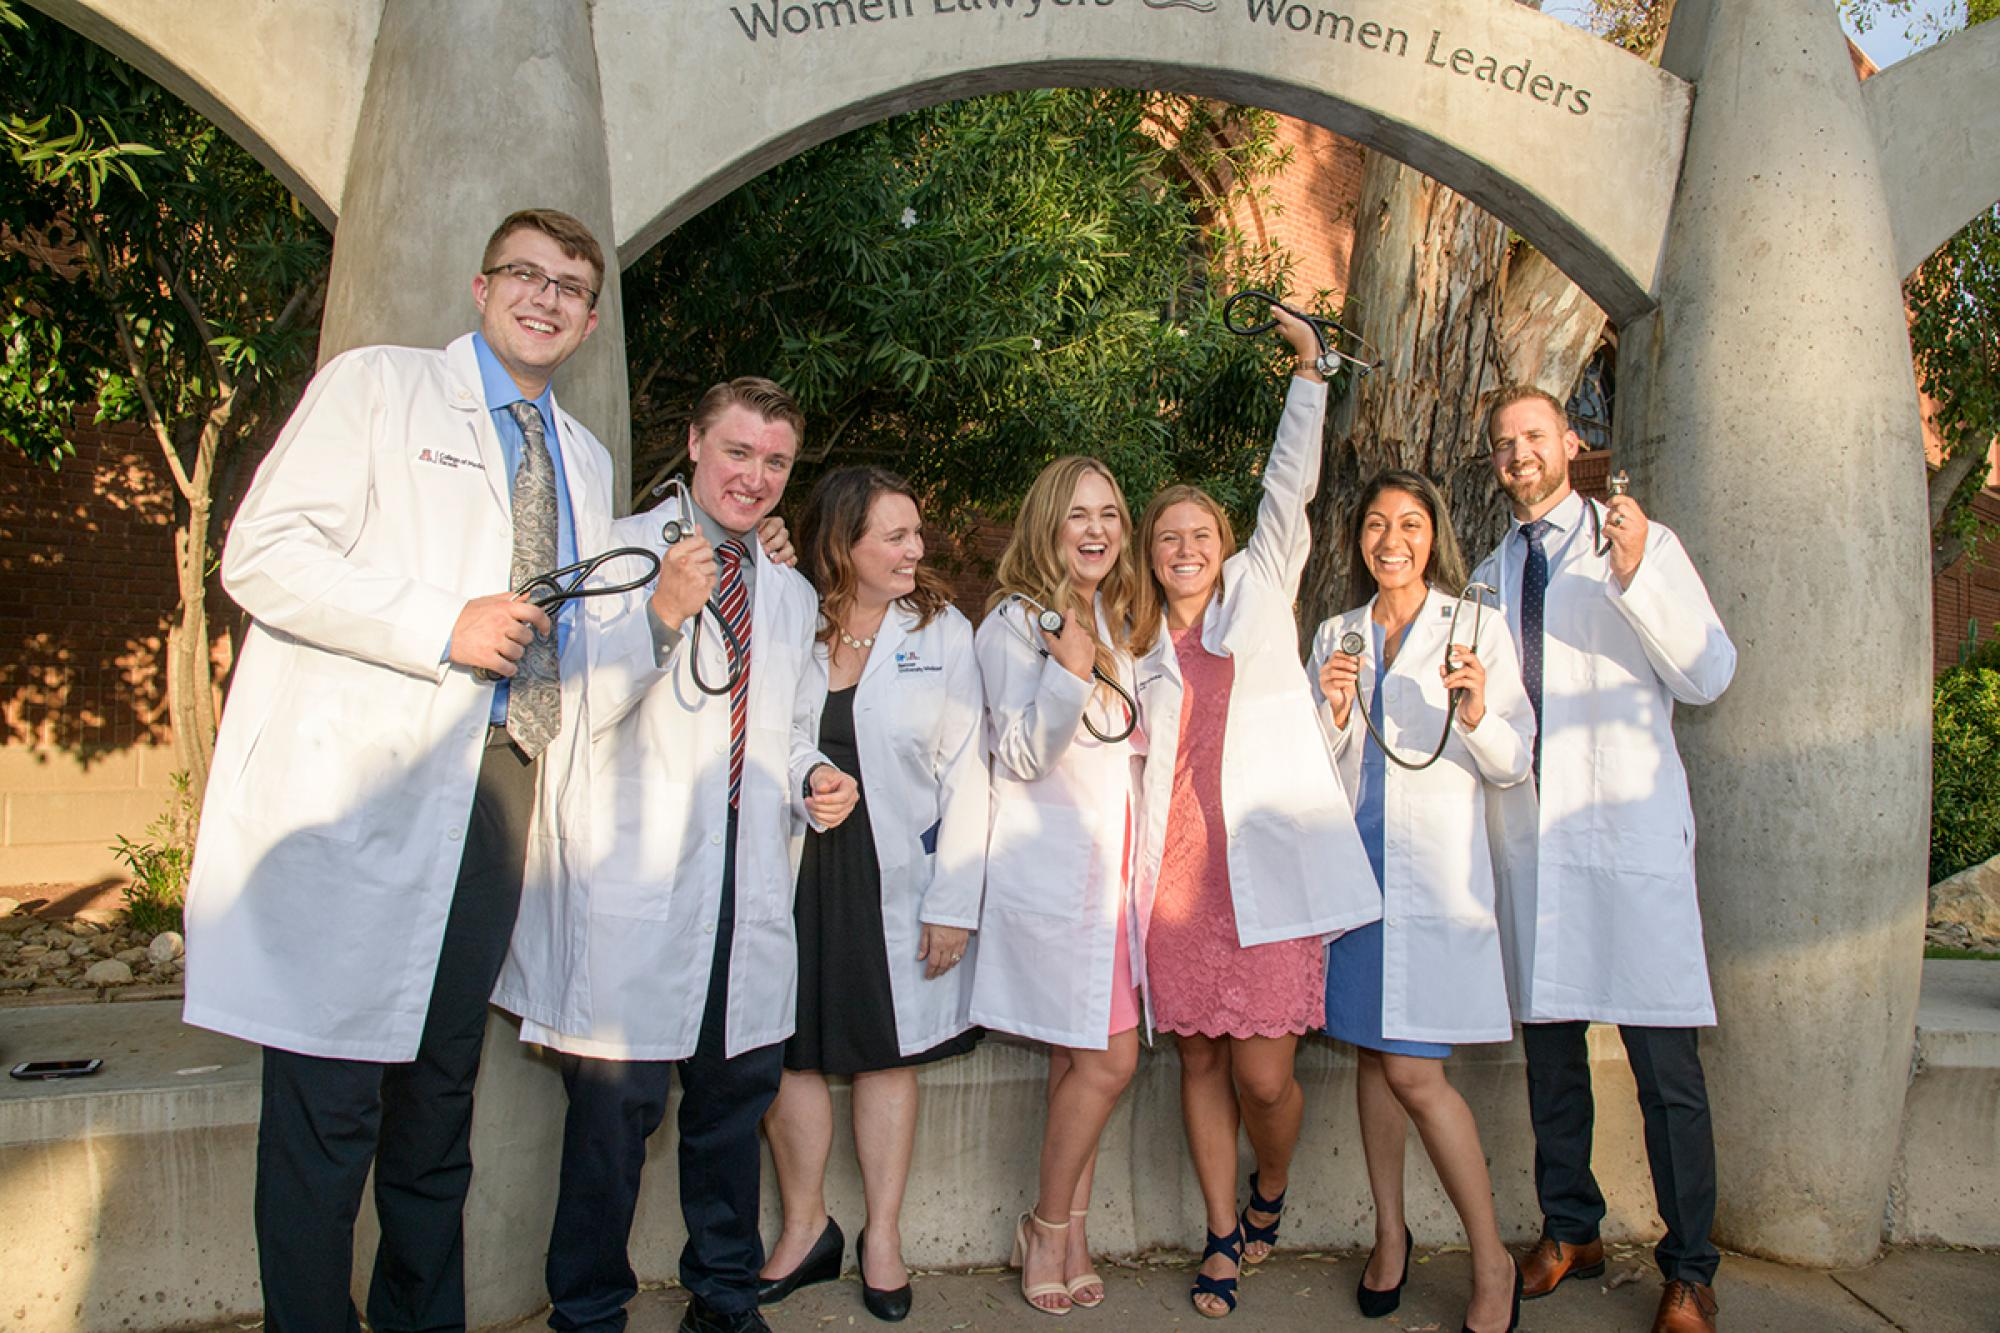 Nearly half of the College of Medicine –Tucson Class of 2023 received bachelor's or master's degrees from the UA.